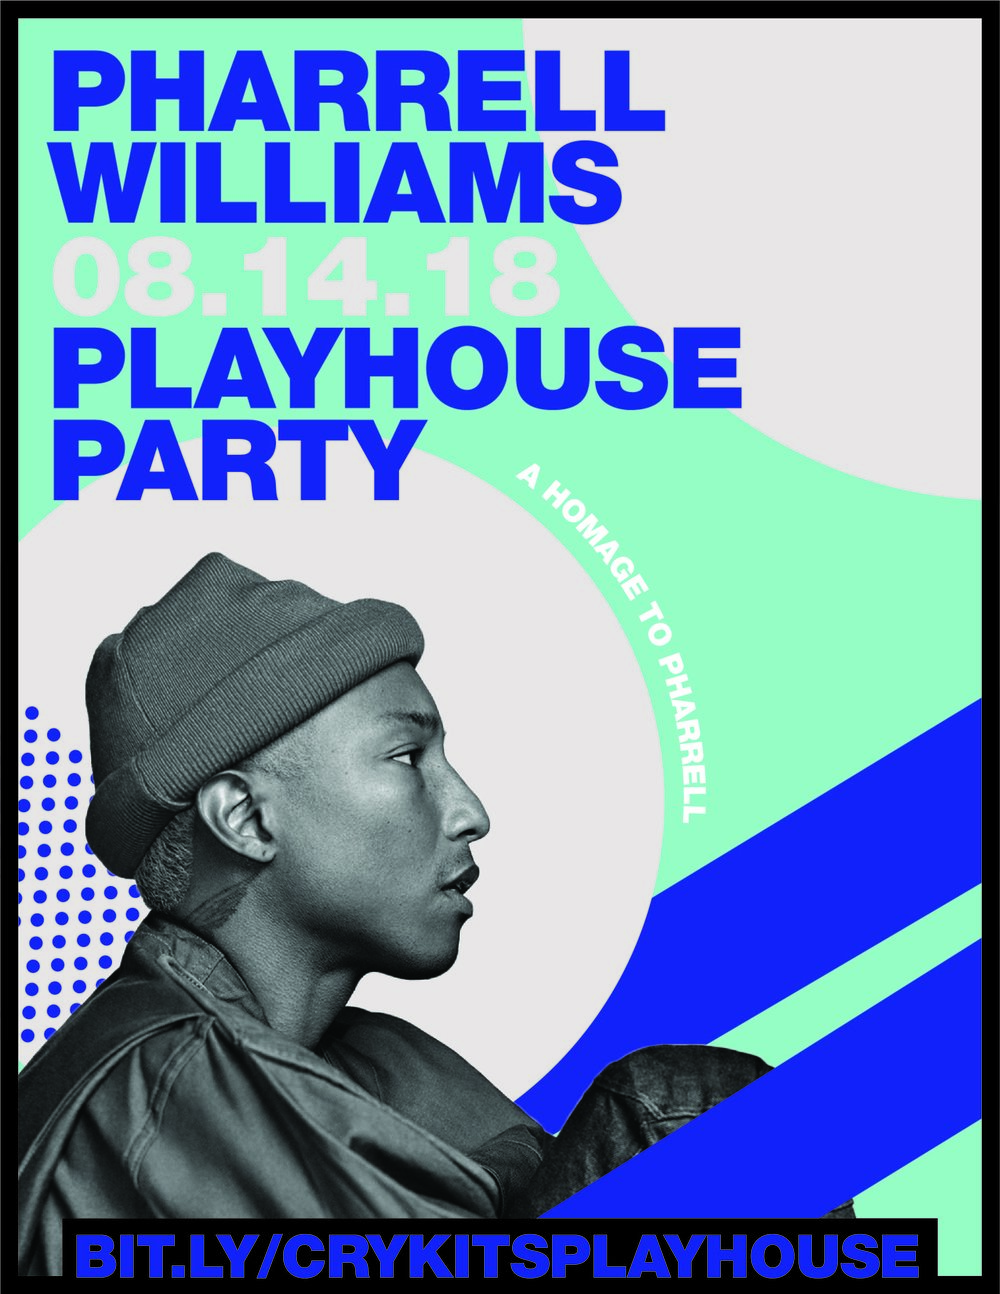 PHARREL x PLAYHOUSE FLYER-02.jpg